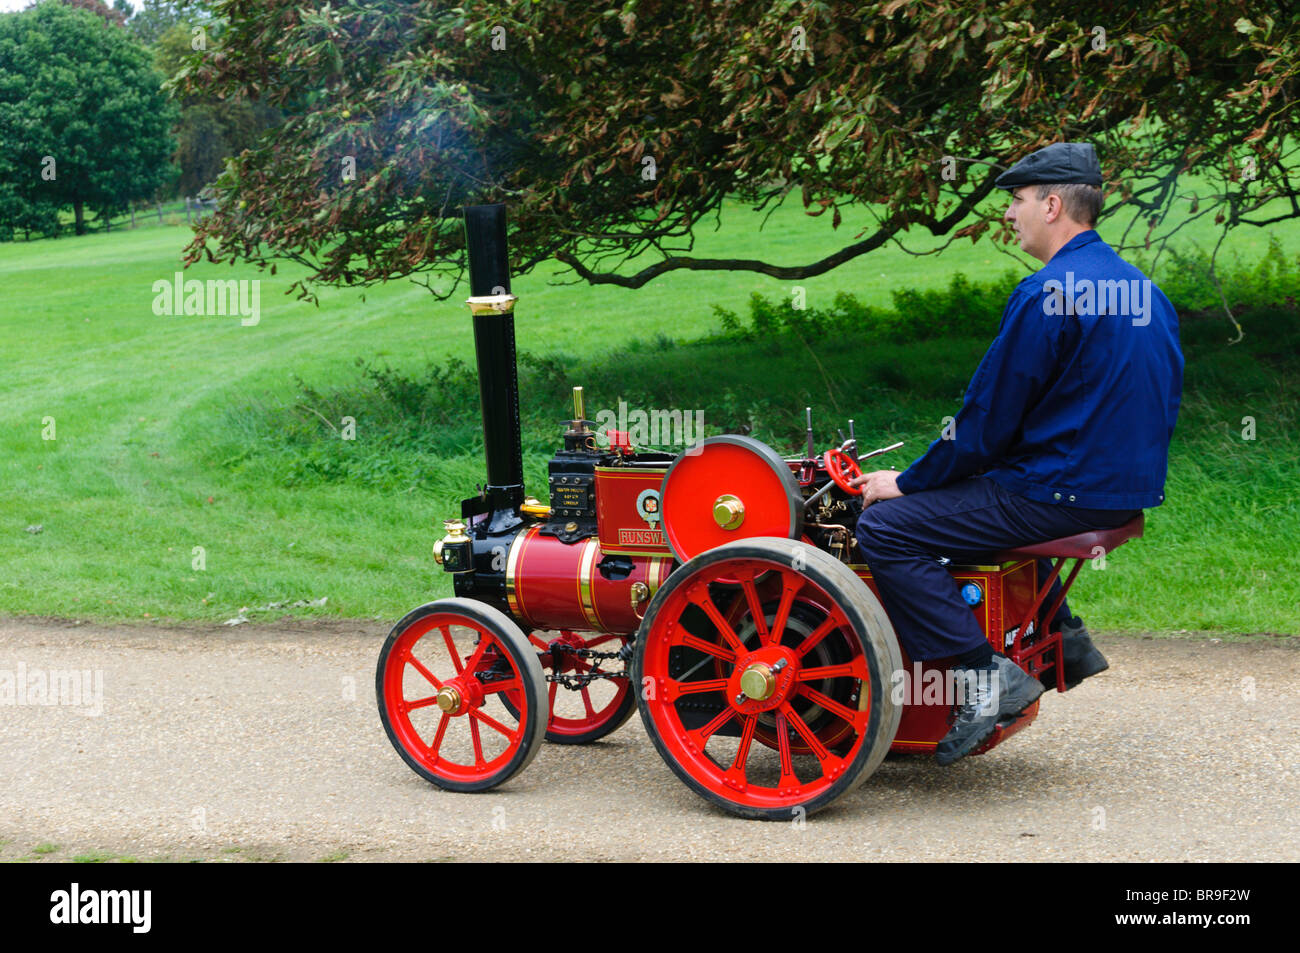 A Ruston Proctor scale model traction engine at the Sandringham Game & Country Fair. - Stock Image